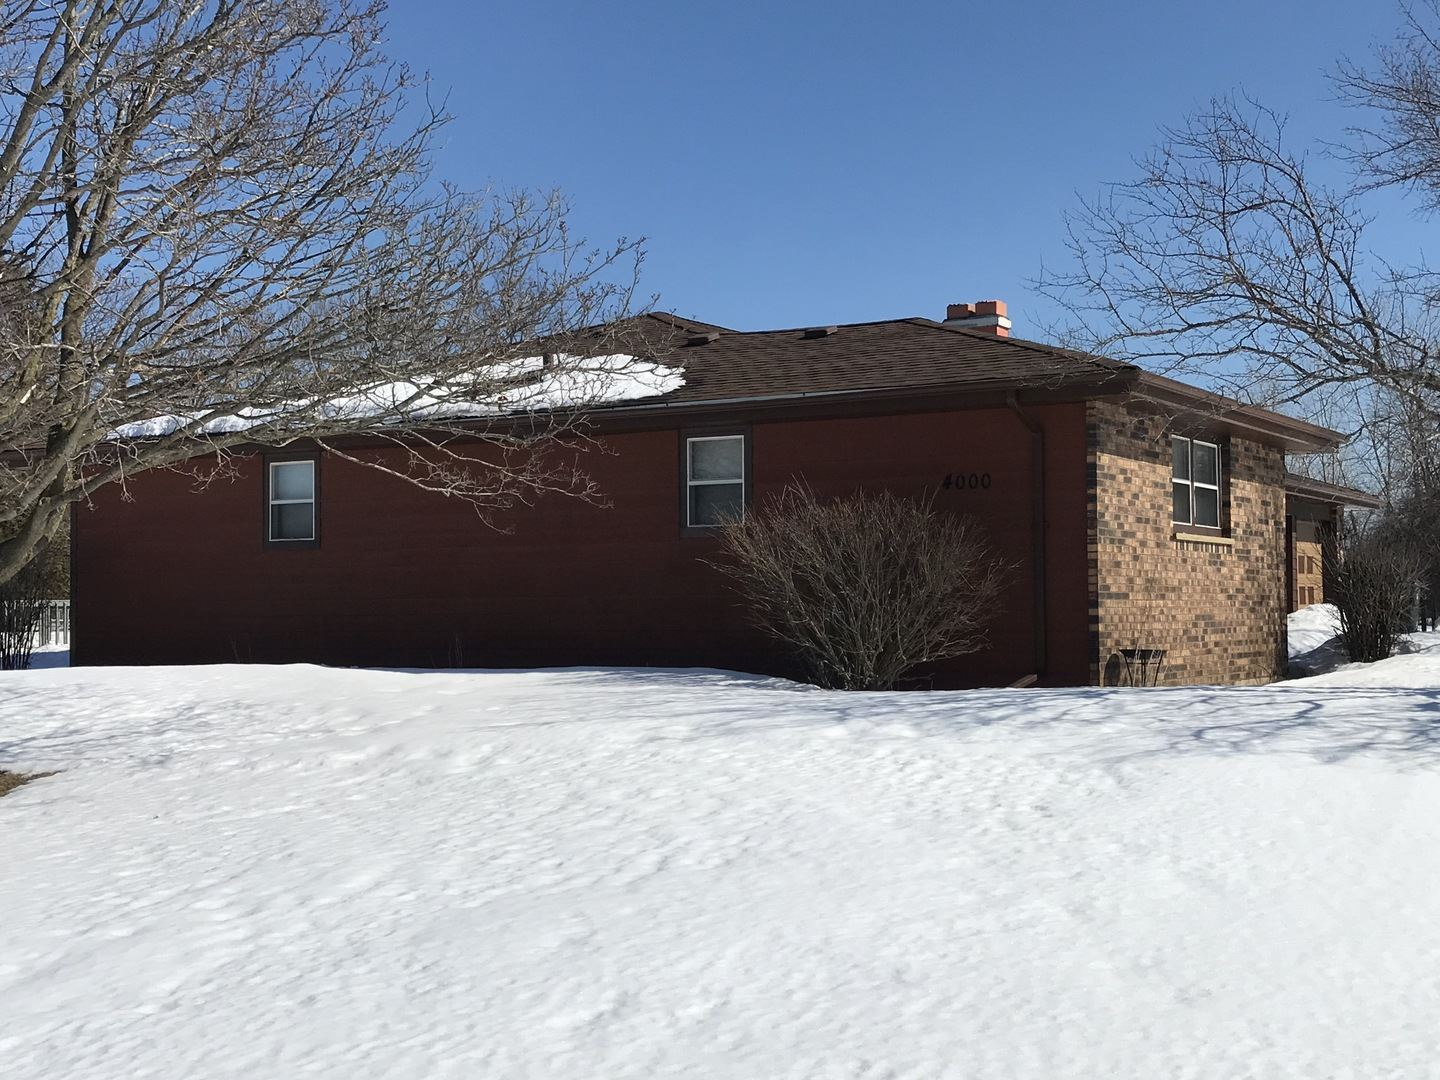 Photo of 4000 Gregory Drive, Zion, IL 60099 (MLS # 11005814)